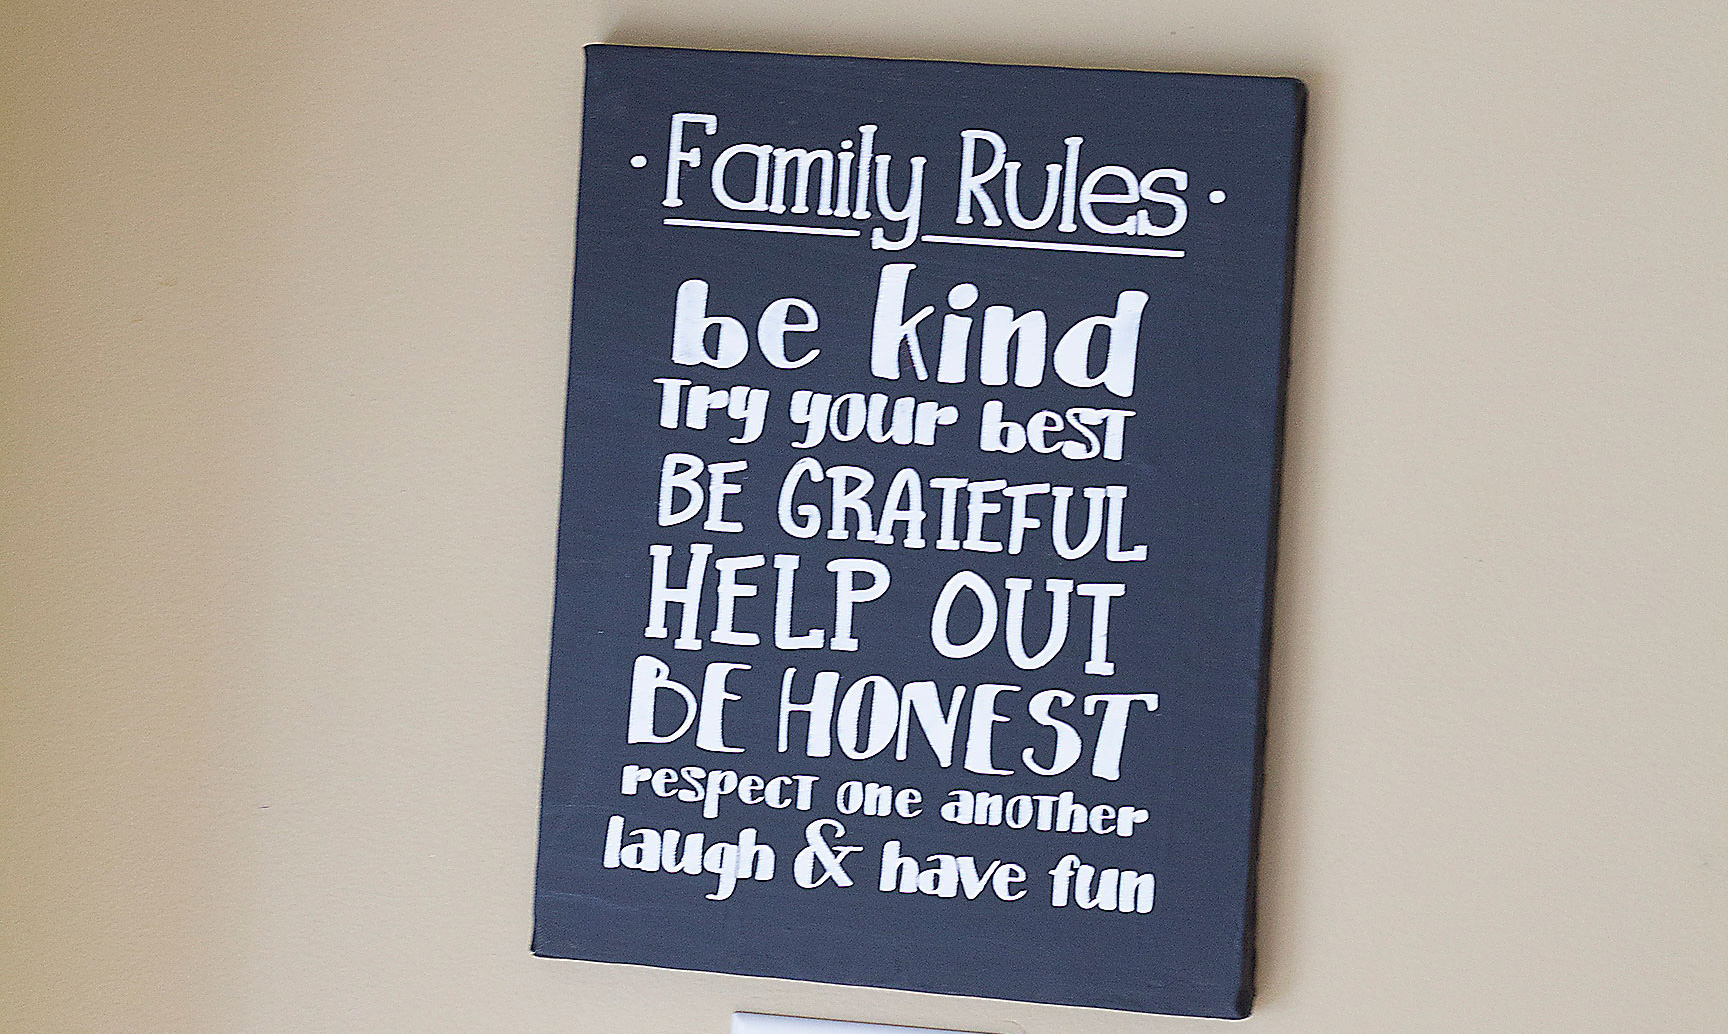 How to Make a Chalkboard Family Rules Sign Using a Cutting Machine DIY